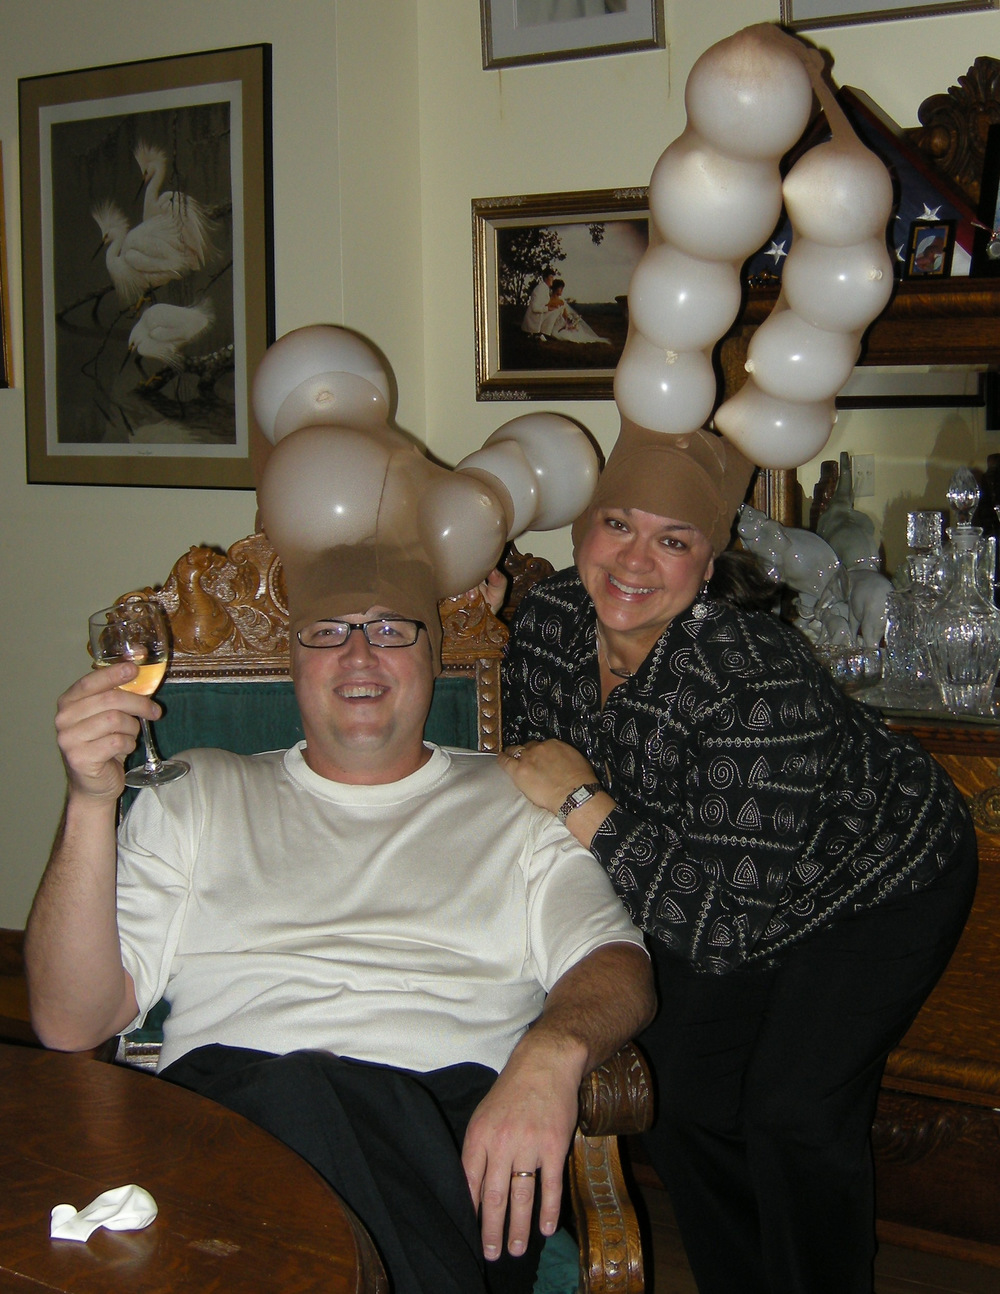 dr. lynda and dr. chuck relax after the fun and games at a holiday party.